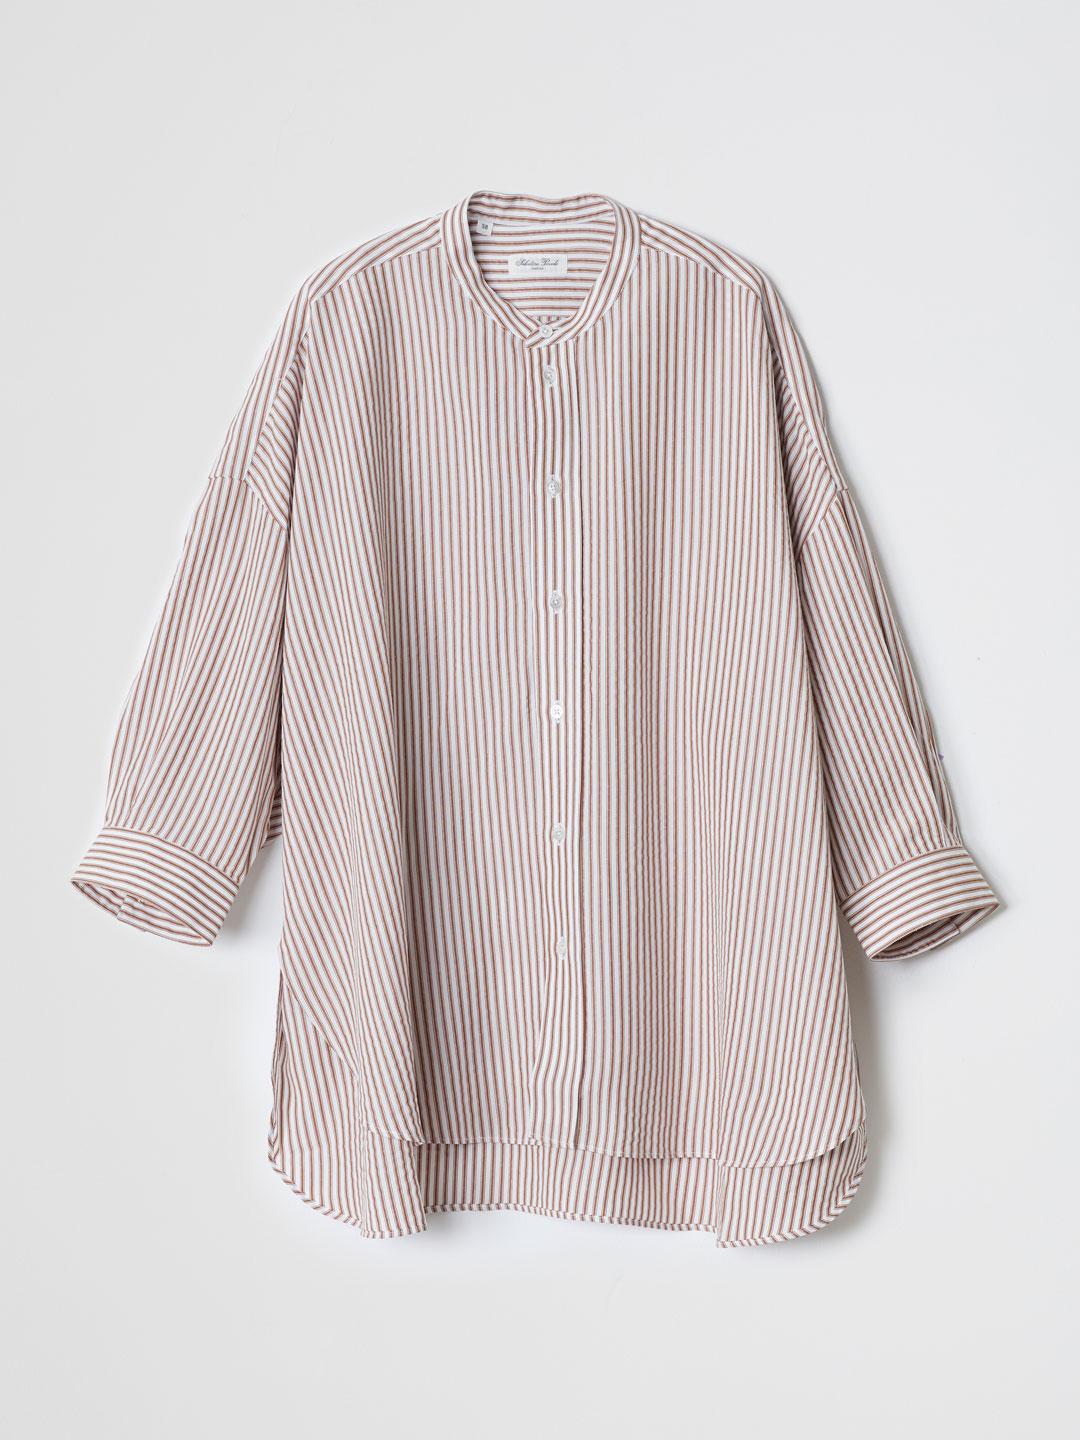 MONICA Stripe Shirt - Brown